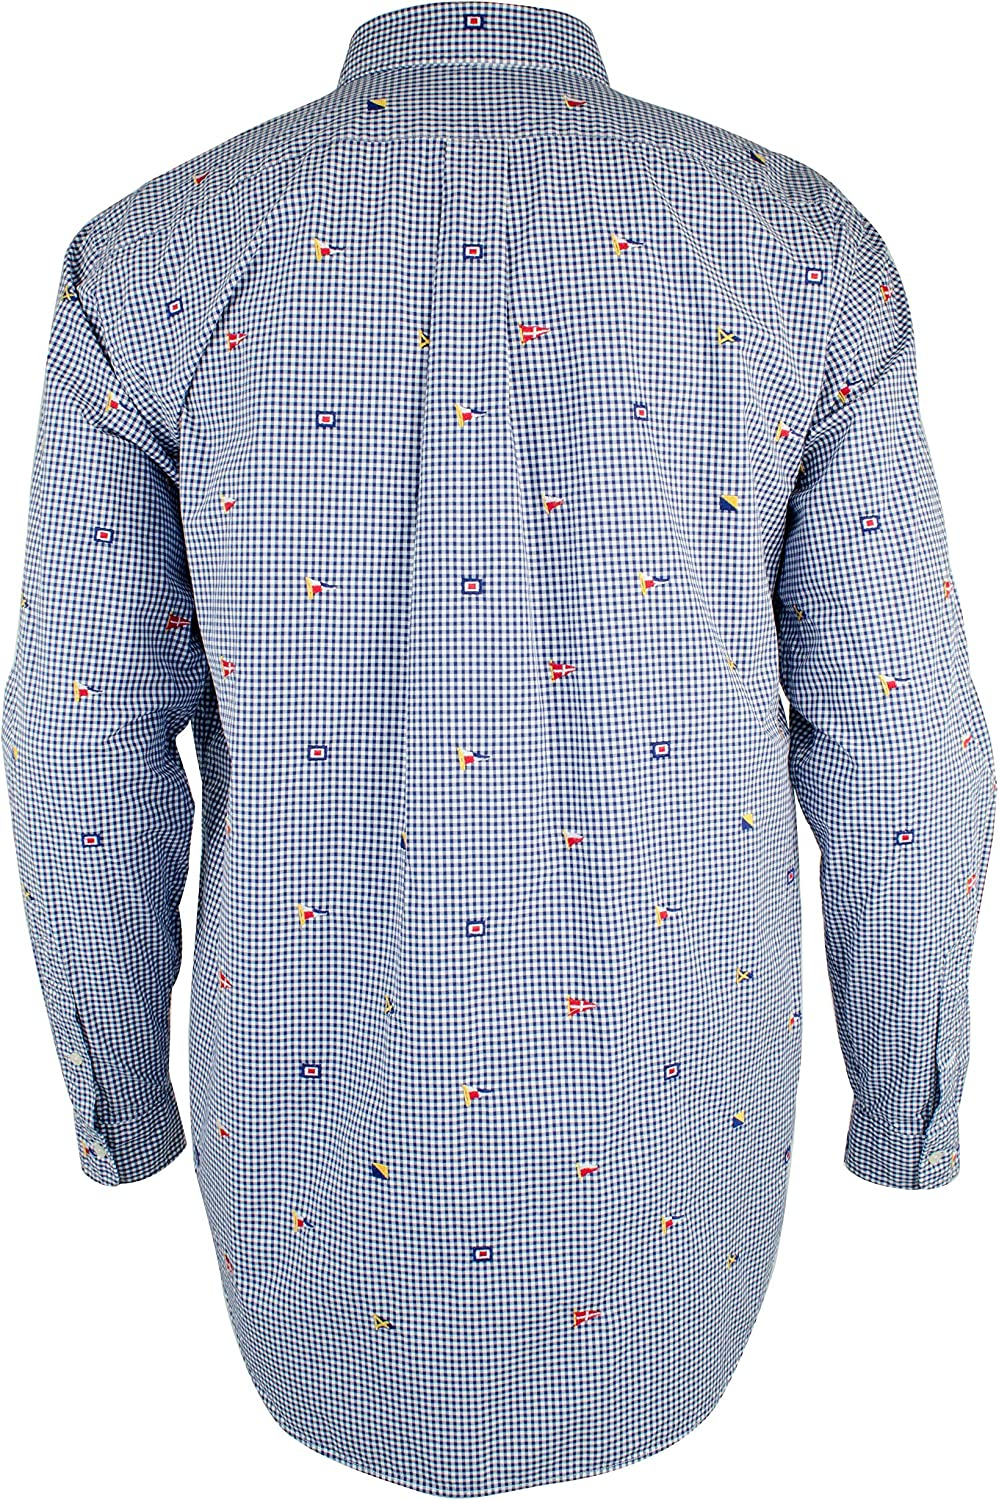 Men's M Fourth of July Plaid Flags Long Sleeve Shirt